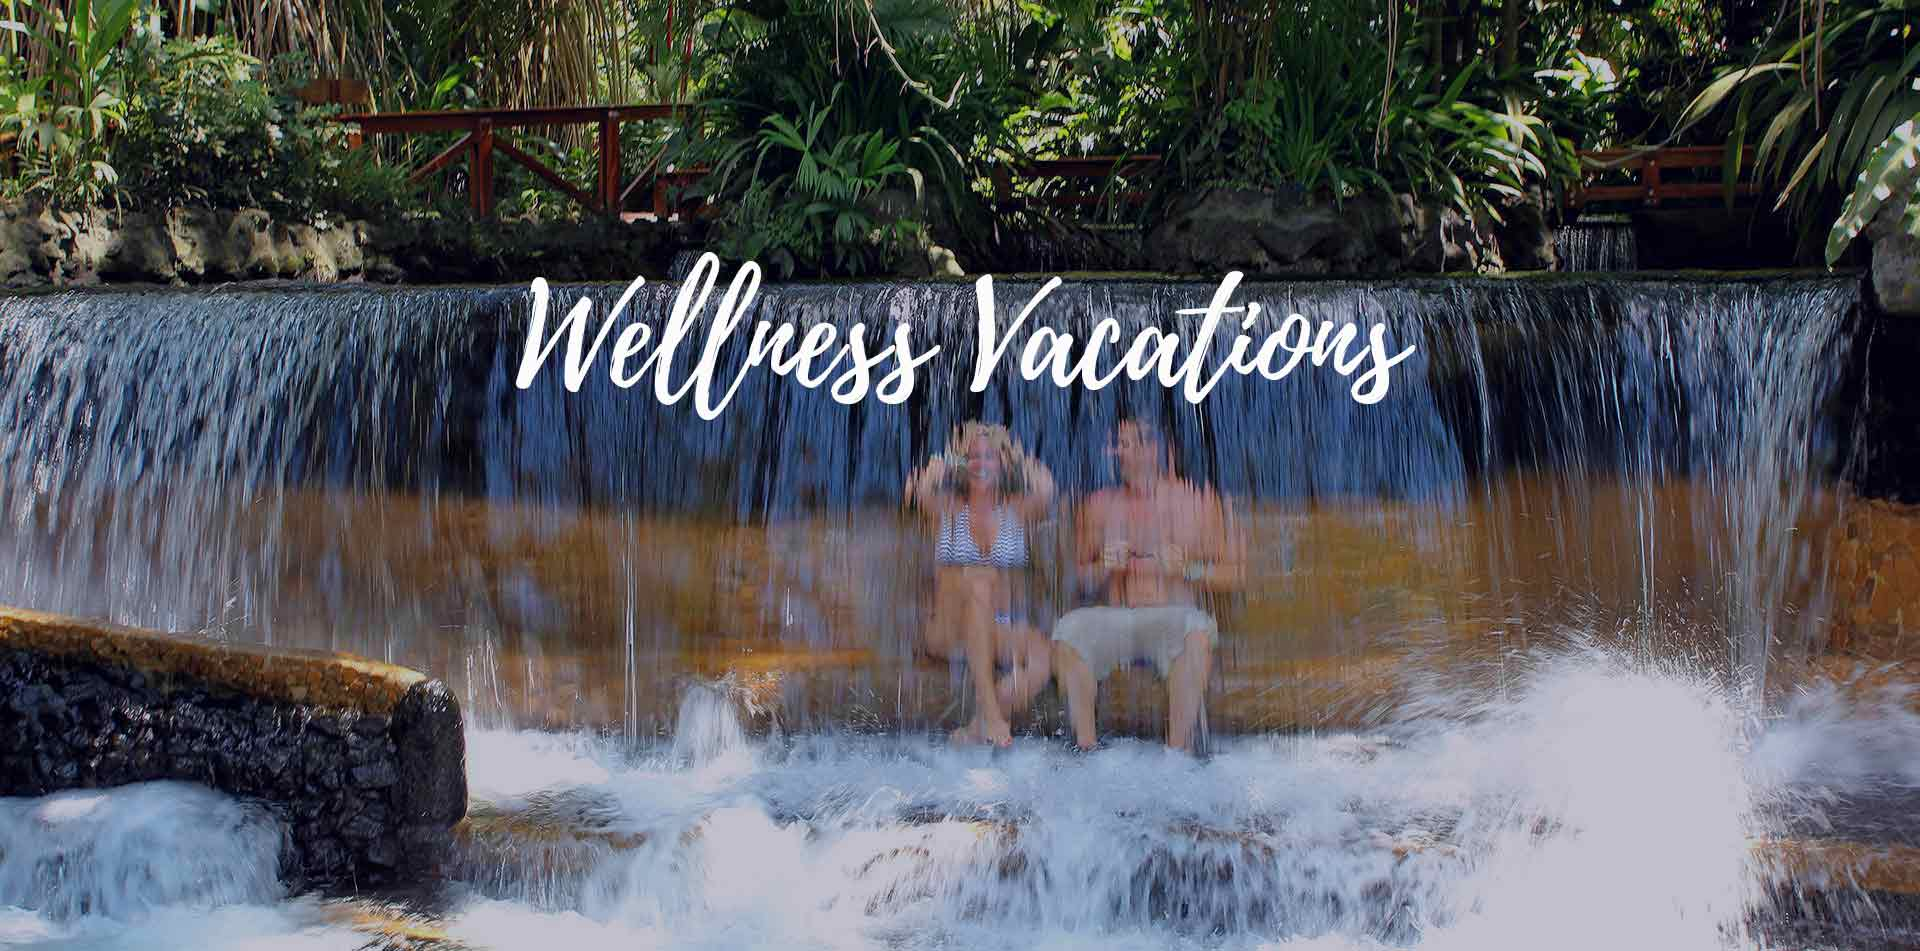 Central America Costa Rica Arenal Tabacon Grand Spa Thermal Resort couple waterfall wellness vacations - luxury destinations